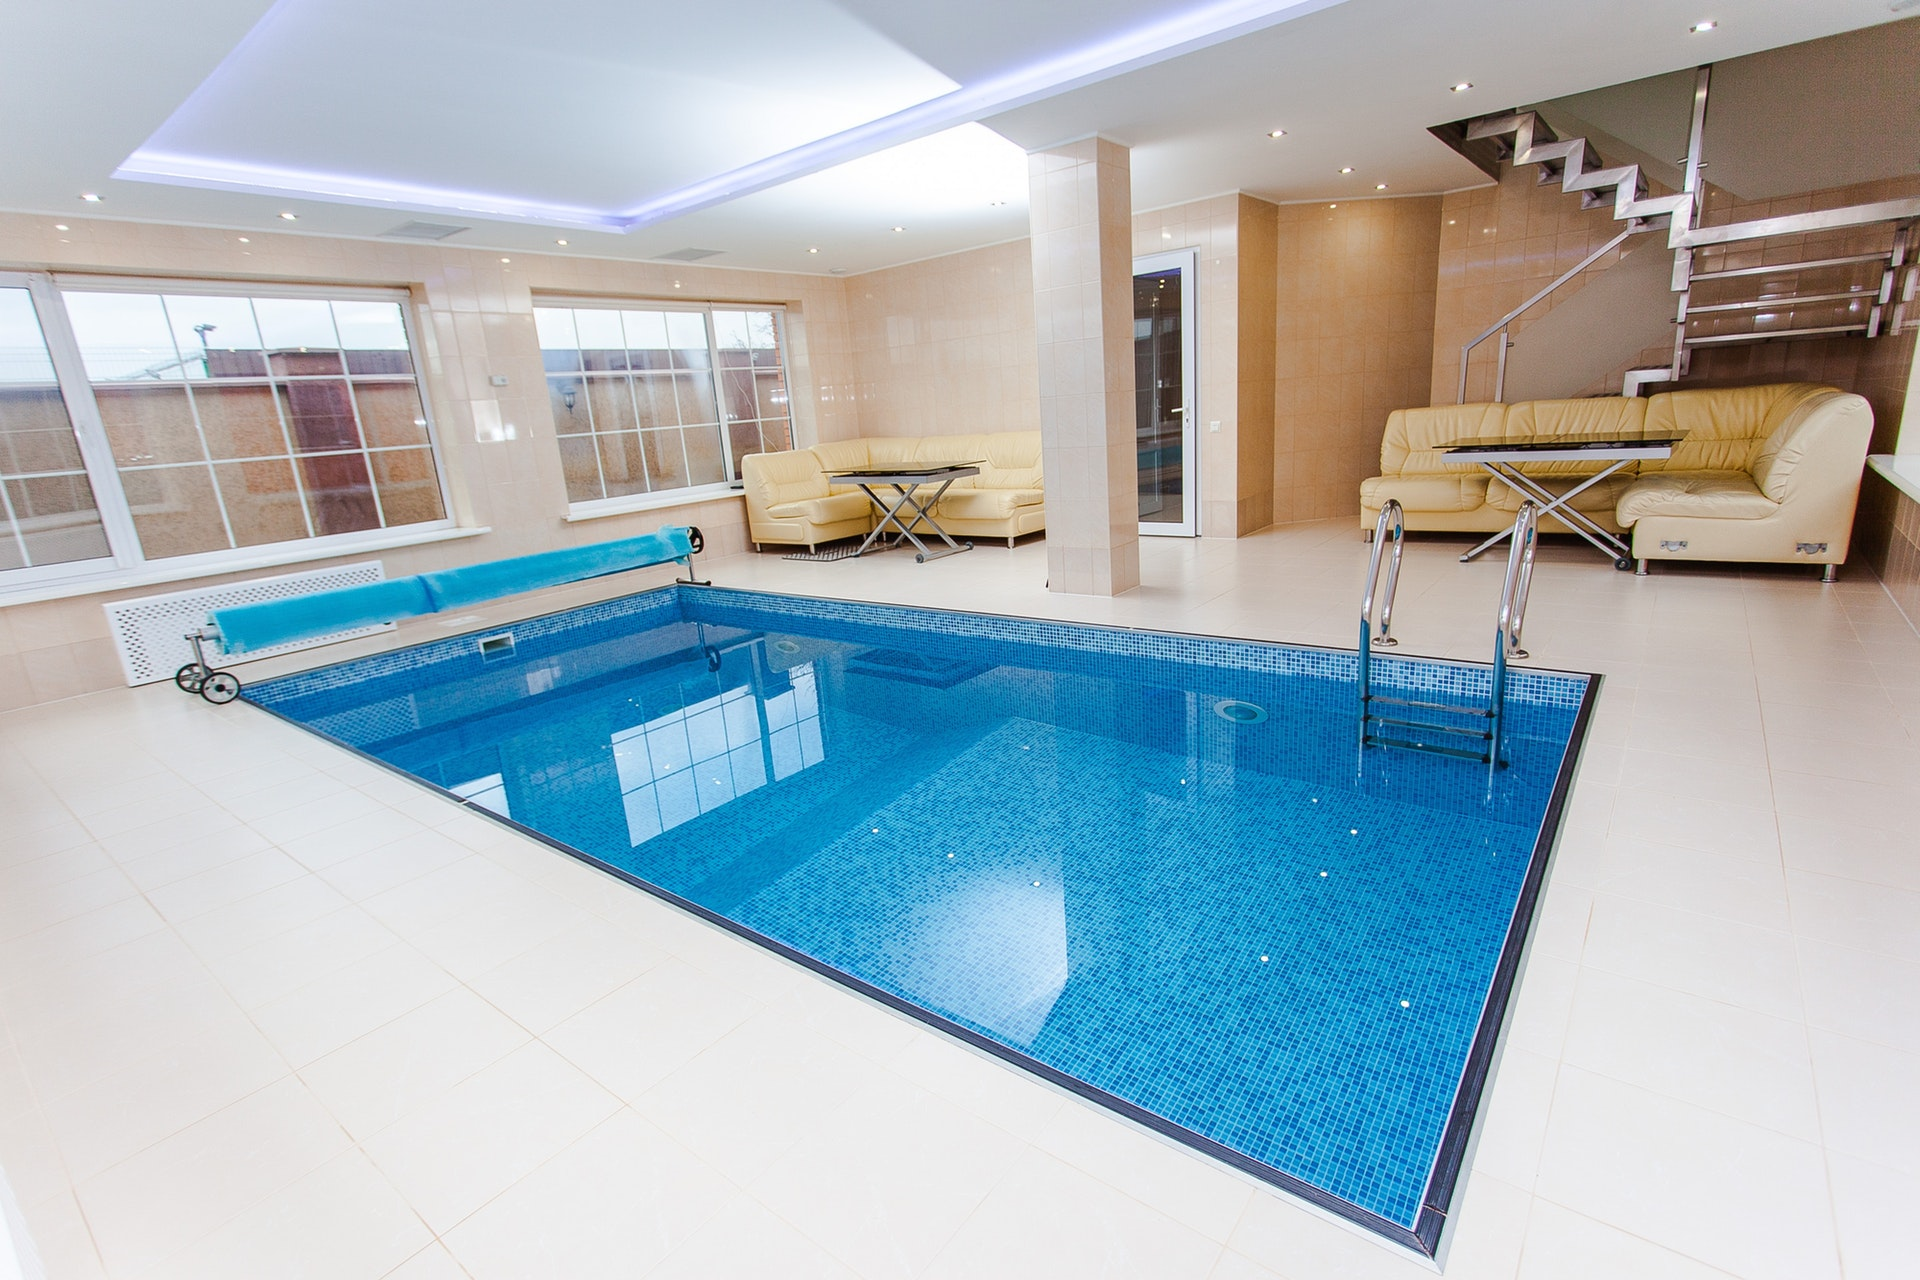 Pool Installation Services in Phoenix